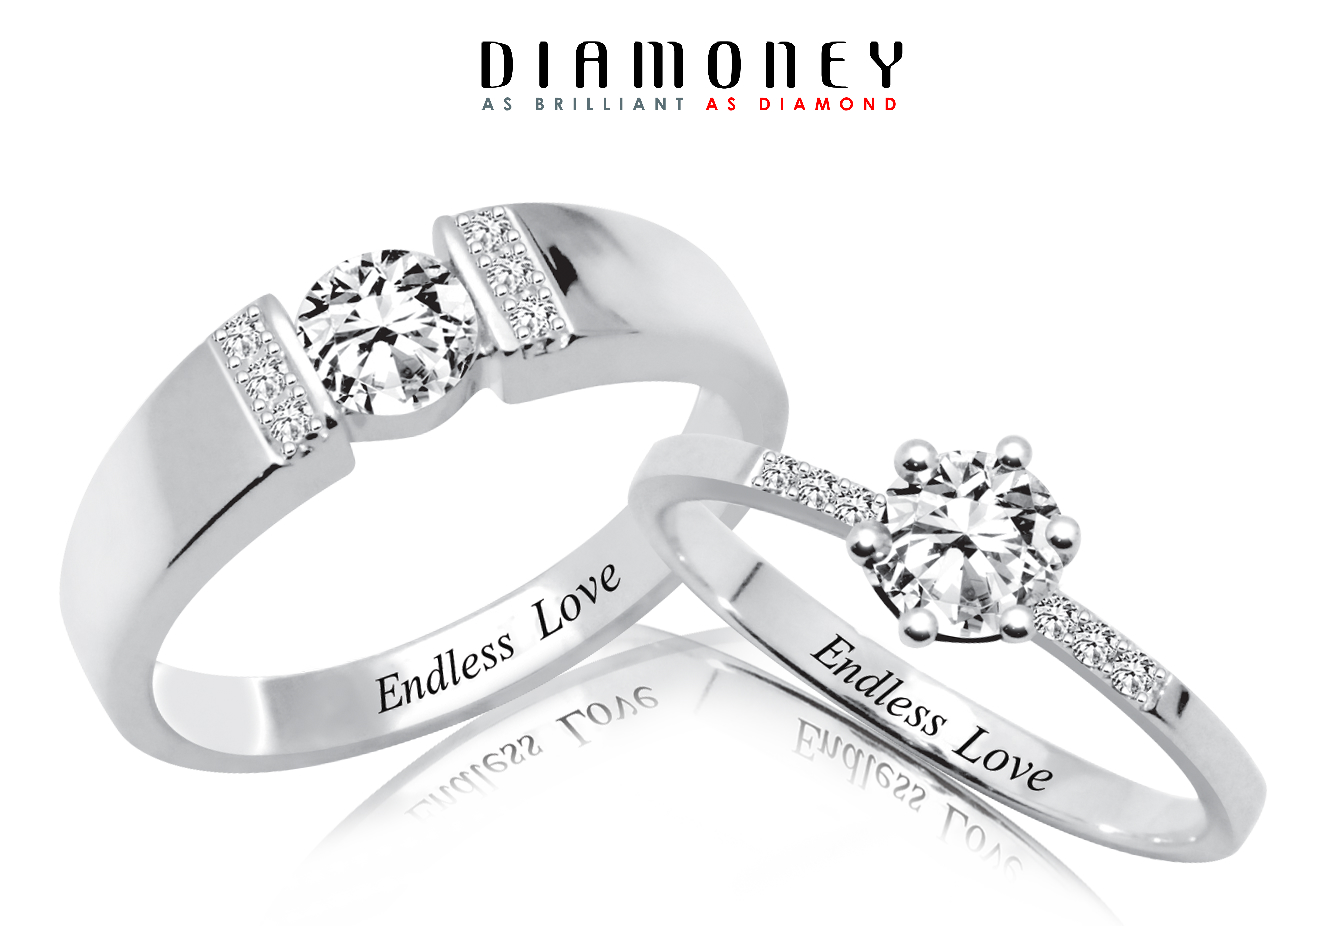 of elegant alloy girlz couple wedding luxury ideas set gamer india love rings in graphics price concept ring buy endless